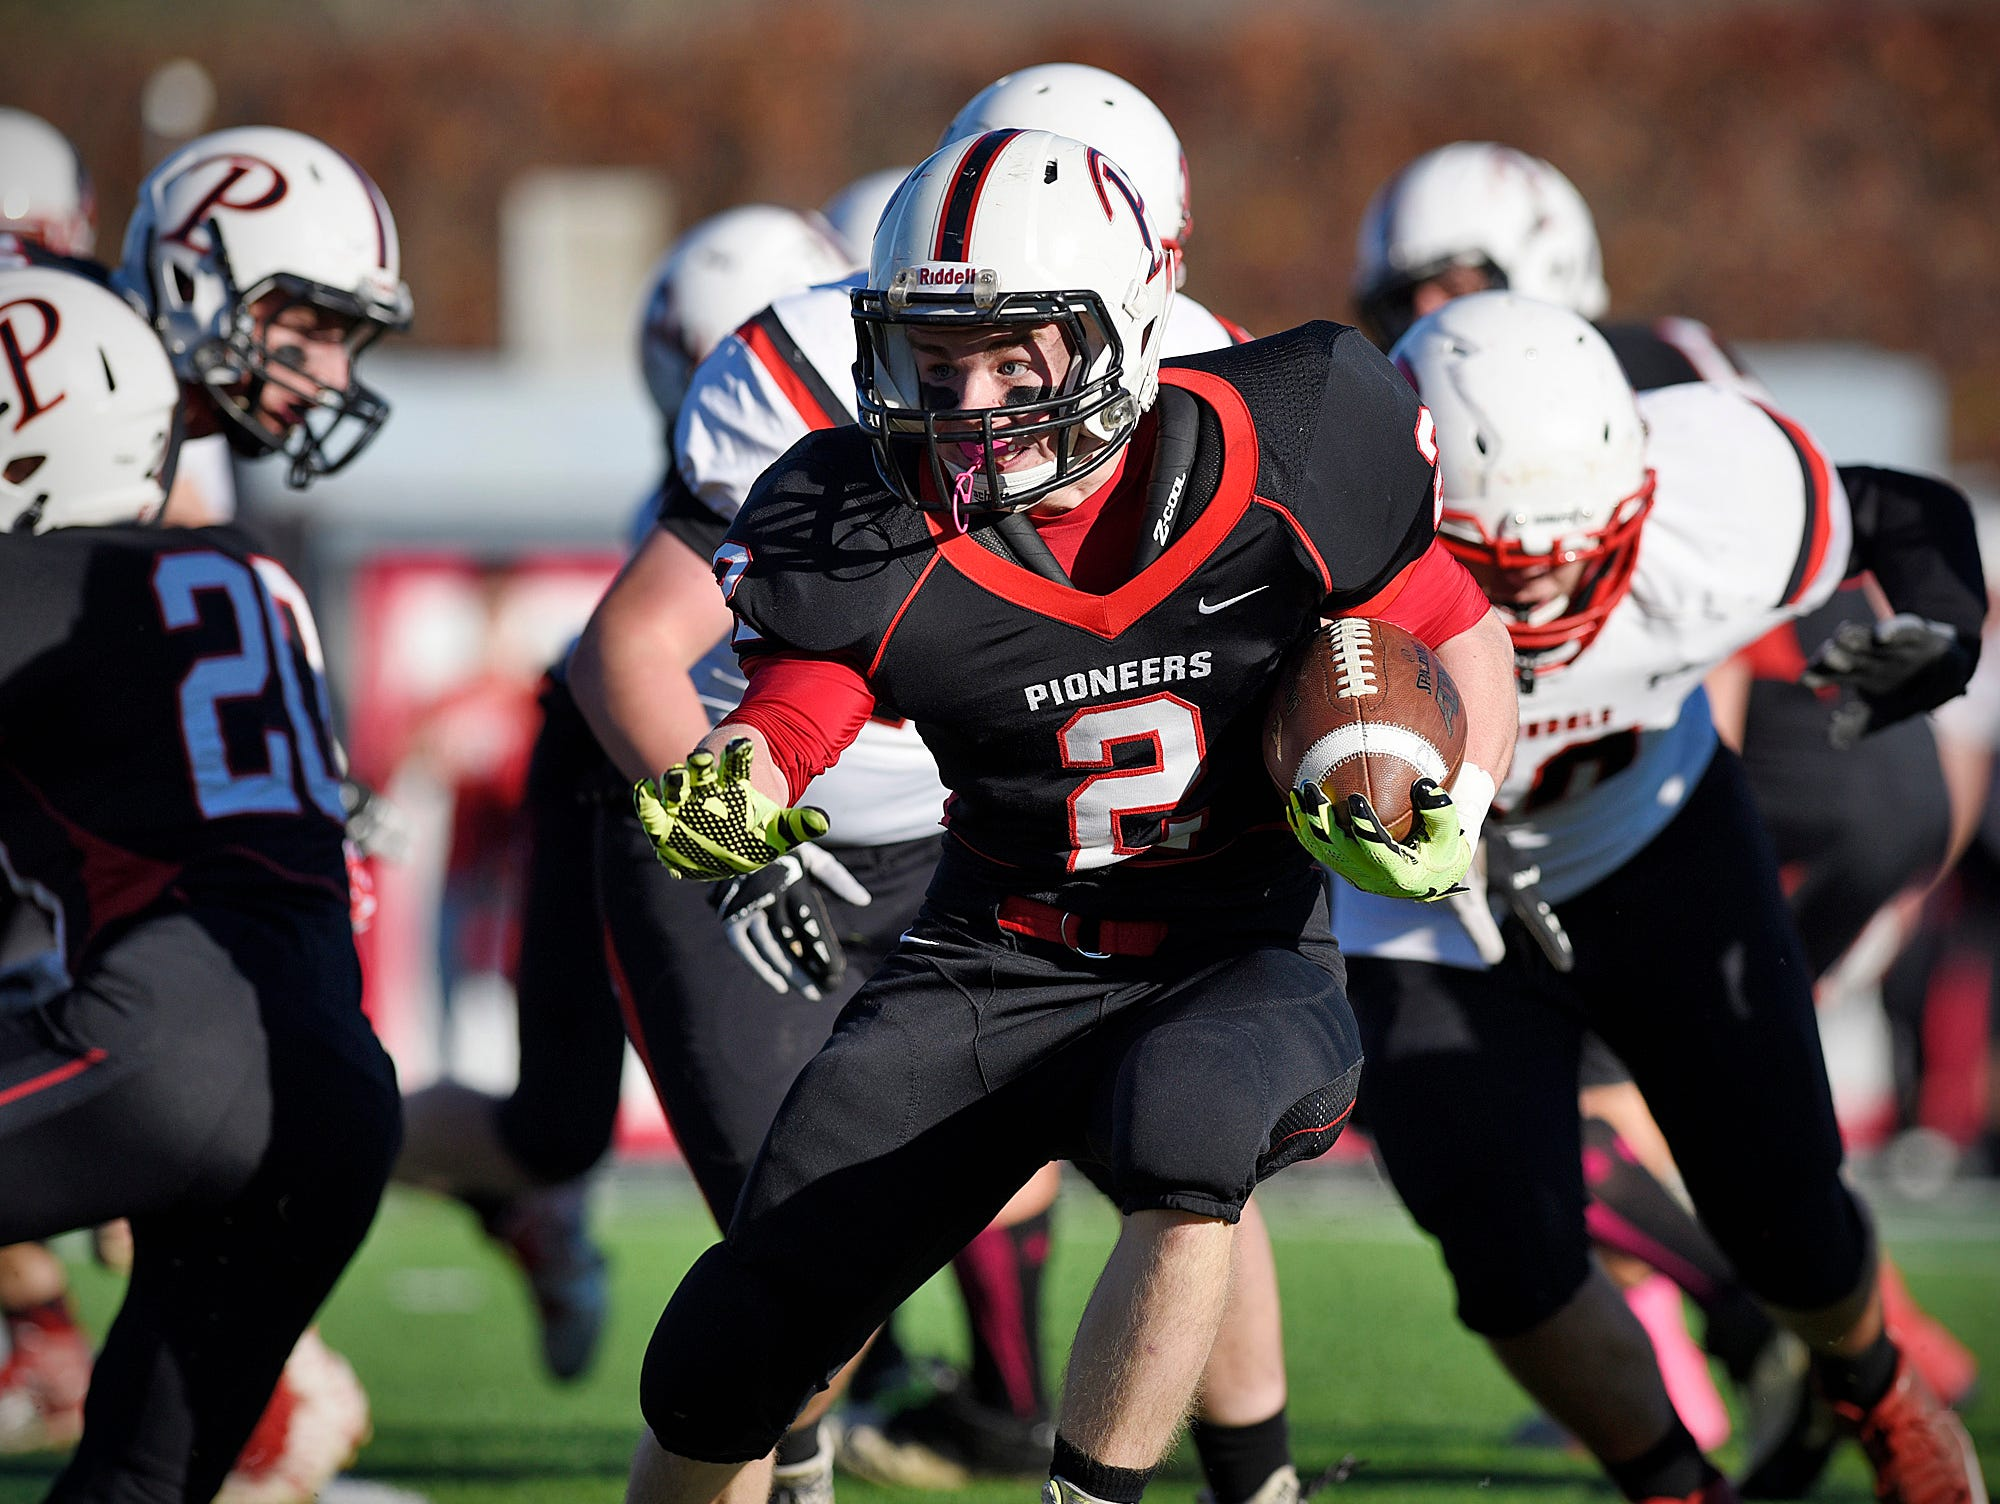 Pierz's Derick Hall breaks through the Annandale line on a run in the first half.